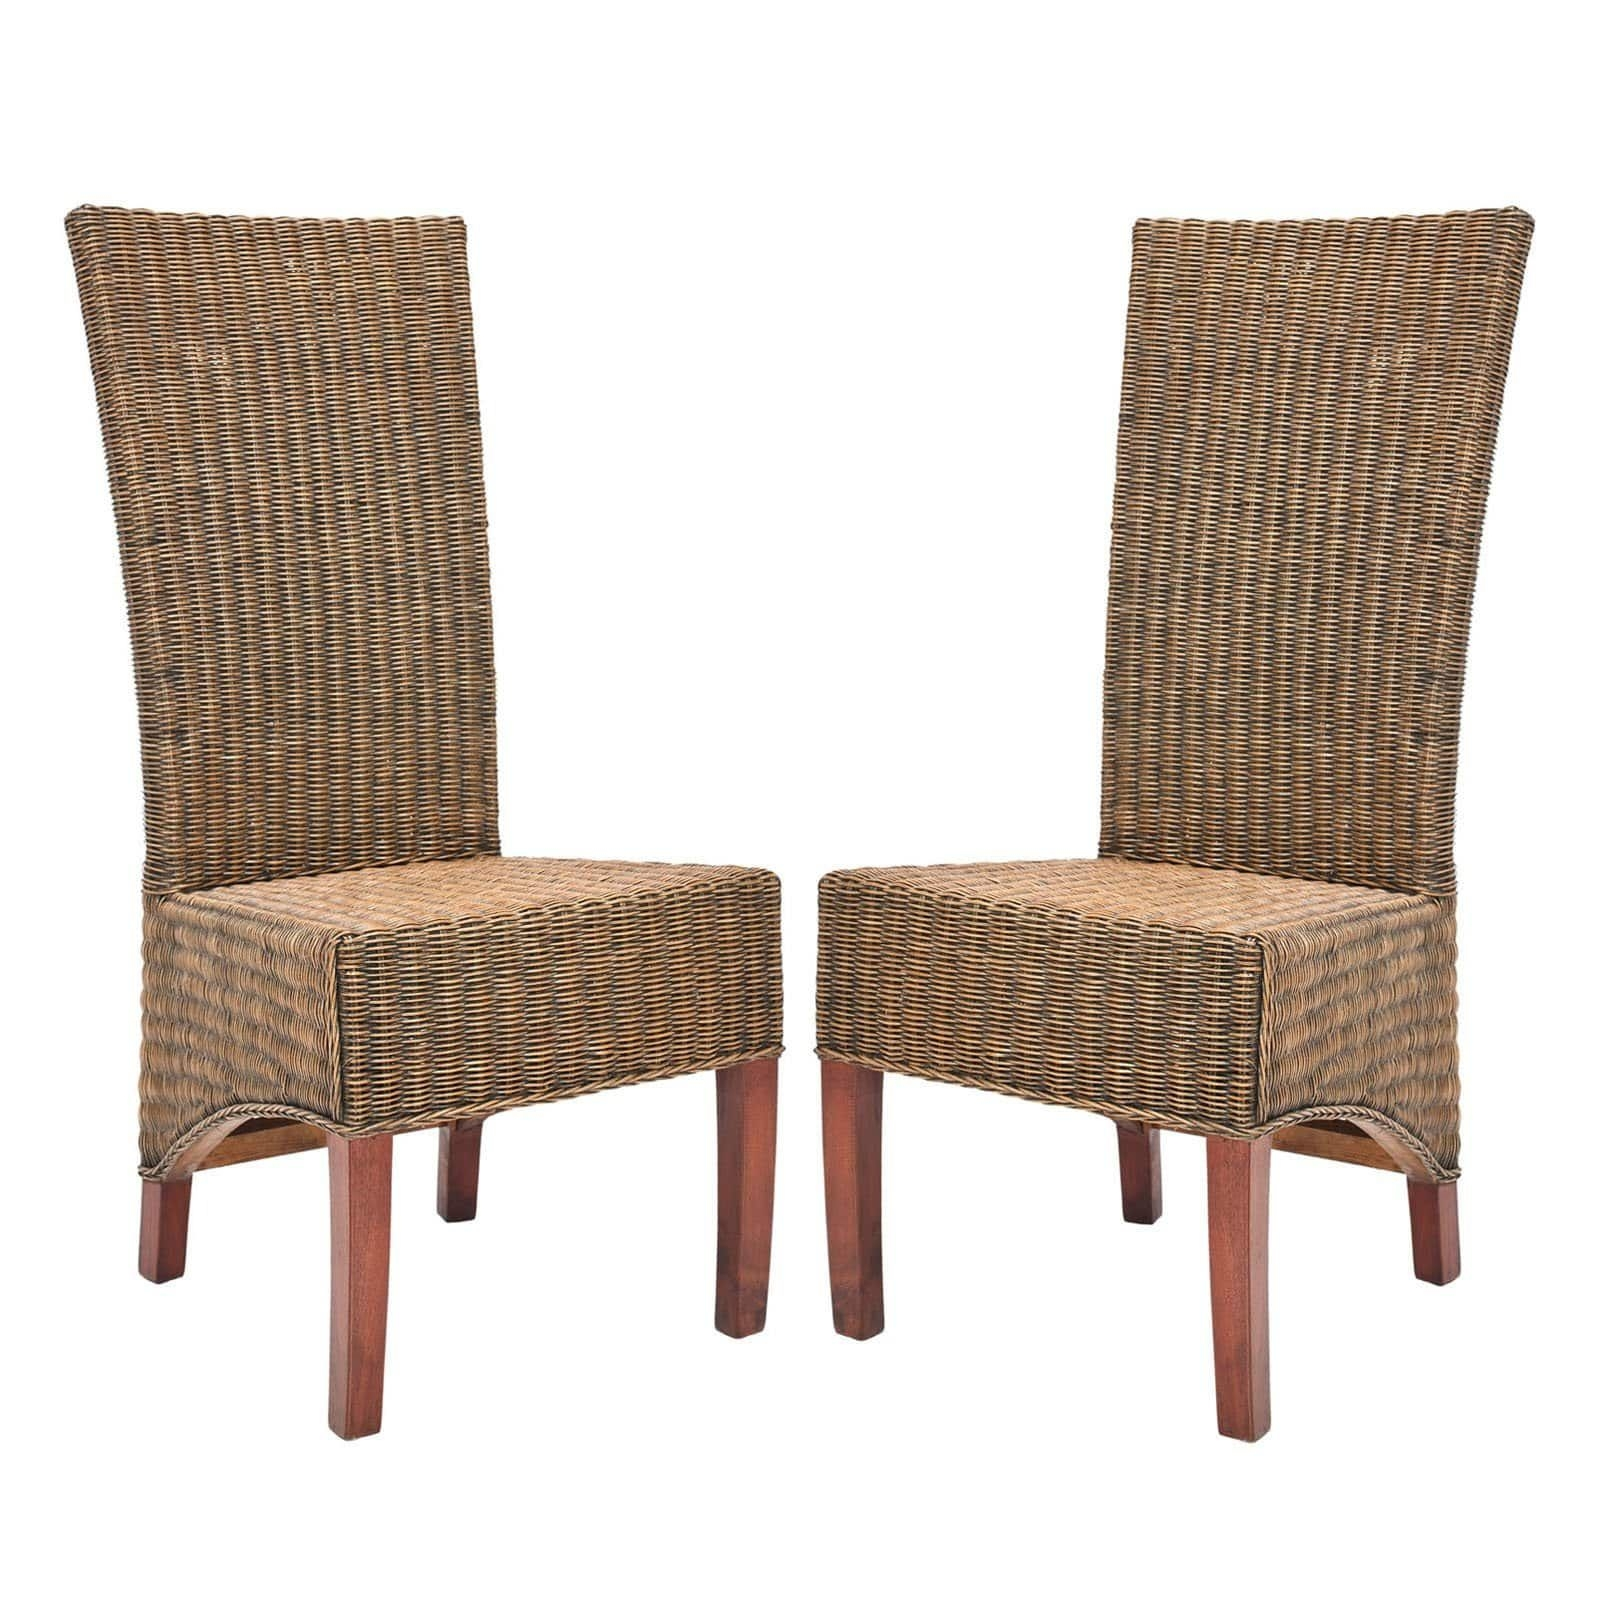 Safavieh Charlotte Wicker High Back Dining Side Chairs  Dark Honey  Set Of 2  Dining Chairs